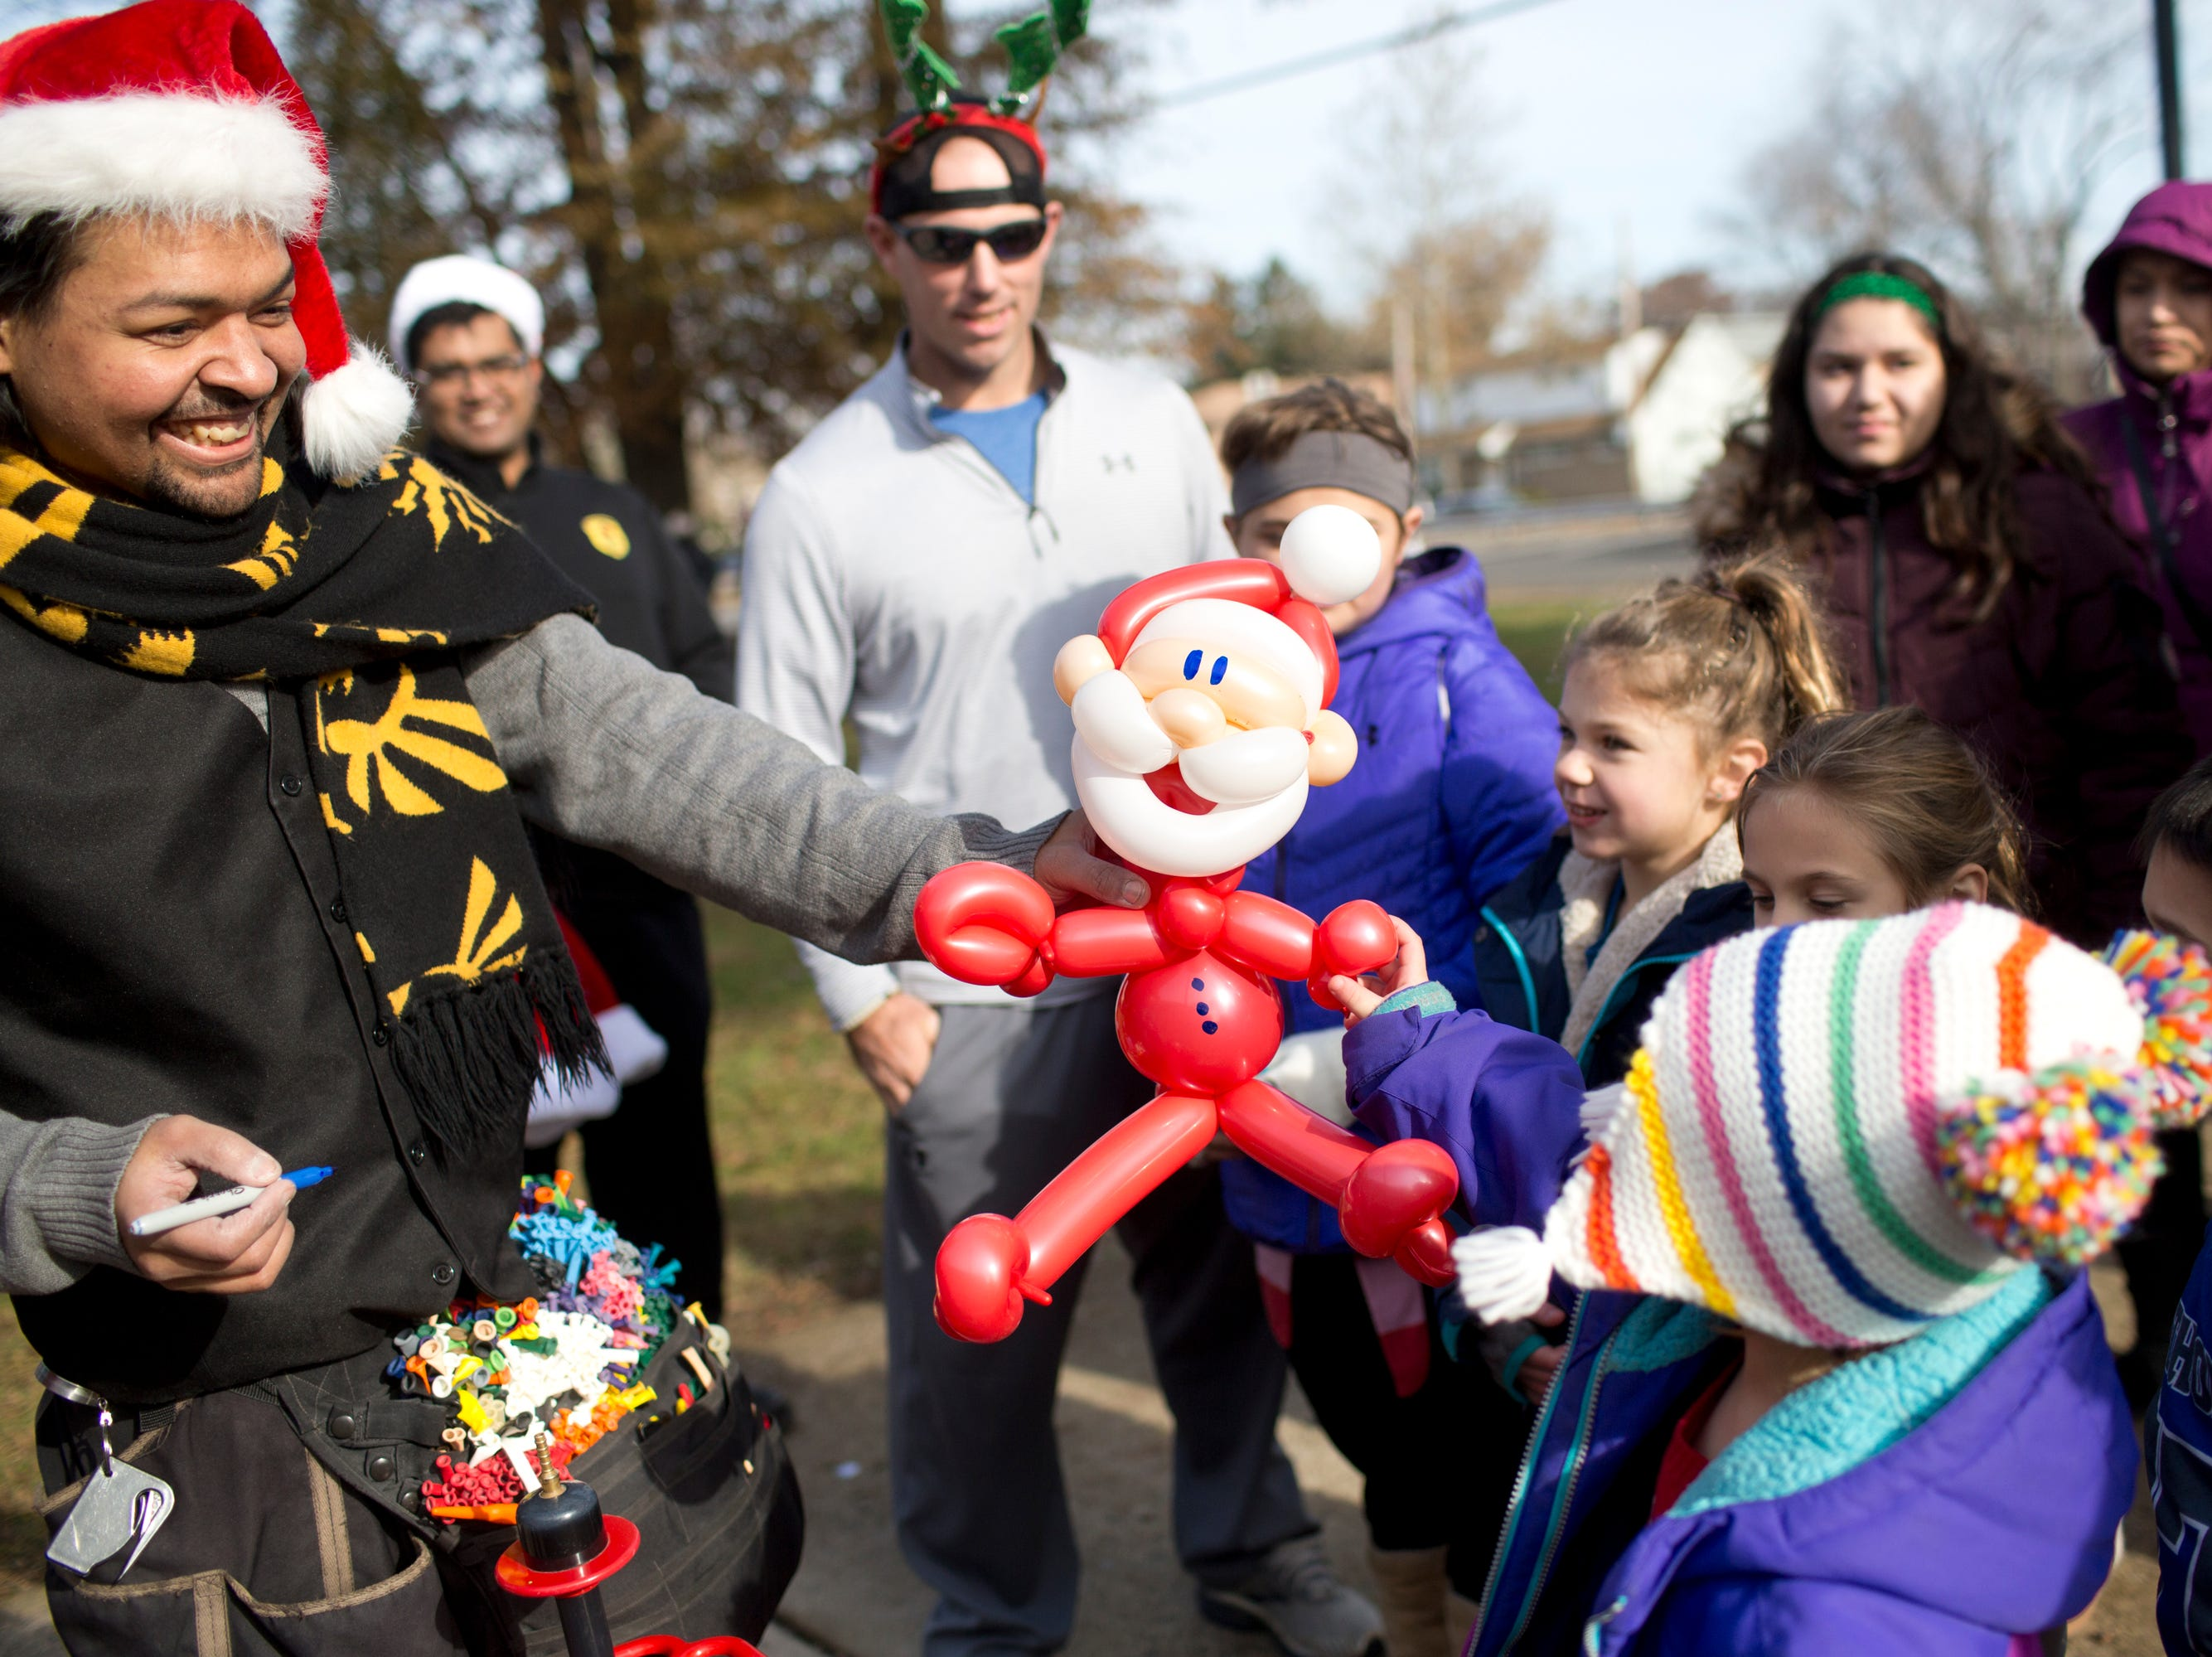 Will Sanchez with Magnificent Entertainment creates a Santa Claus out of balloons for Hailee Bosgra, 4, as her dad Dan Bosgra watches after the 33rd Annual Santa Parade in Hawthorne on Saturday, Dec. 1, 2018.